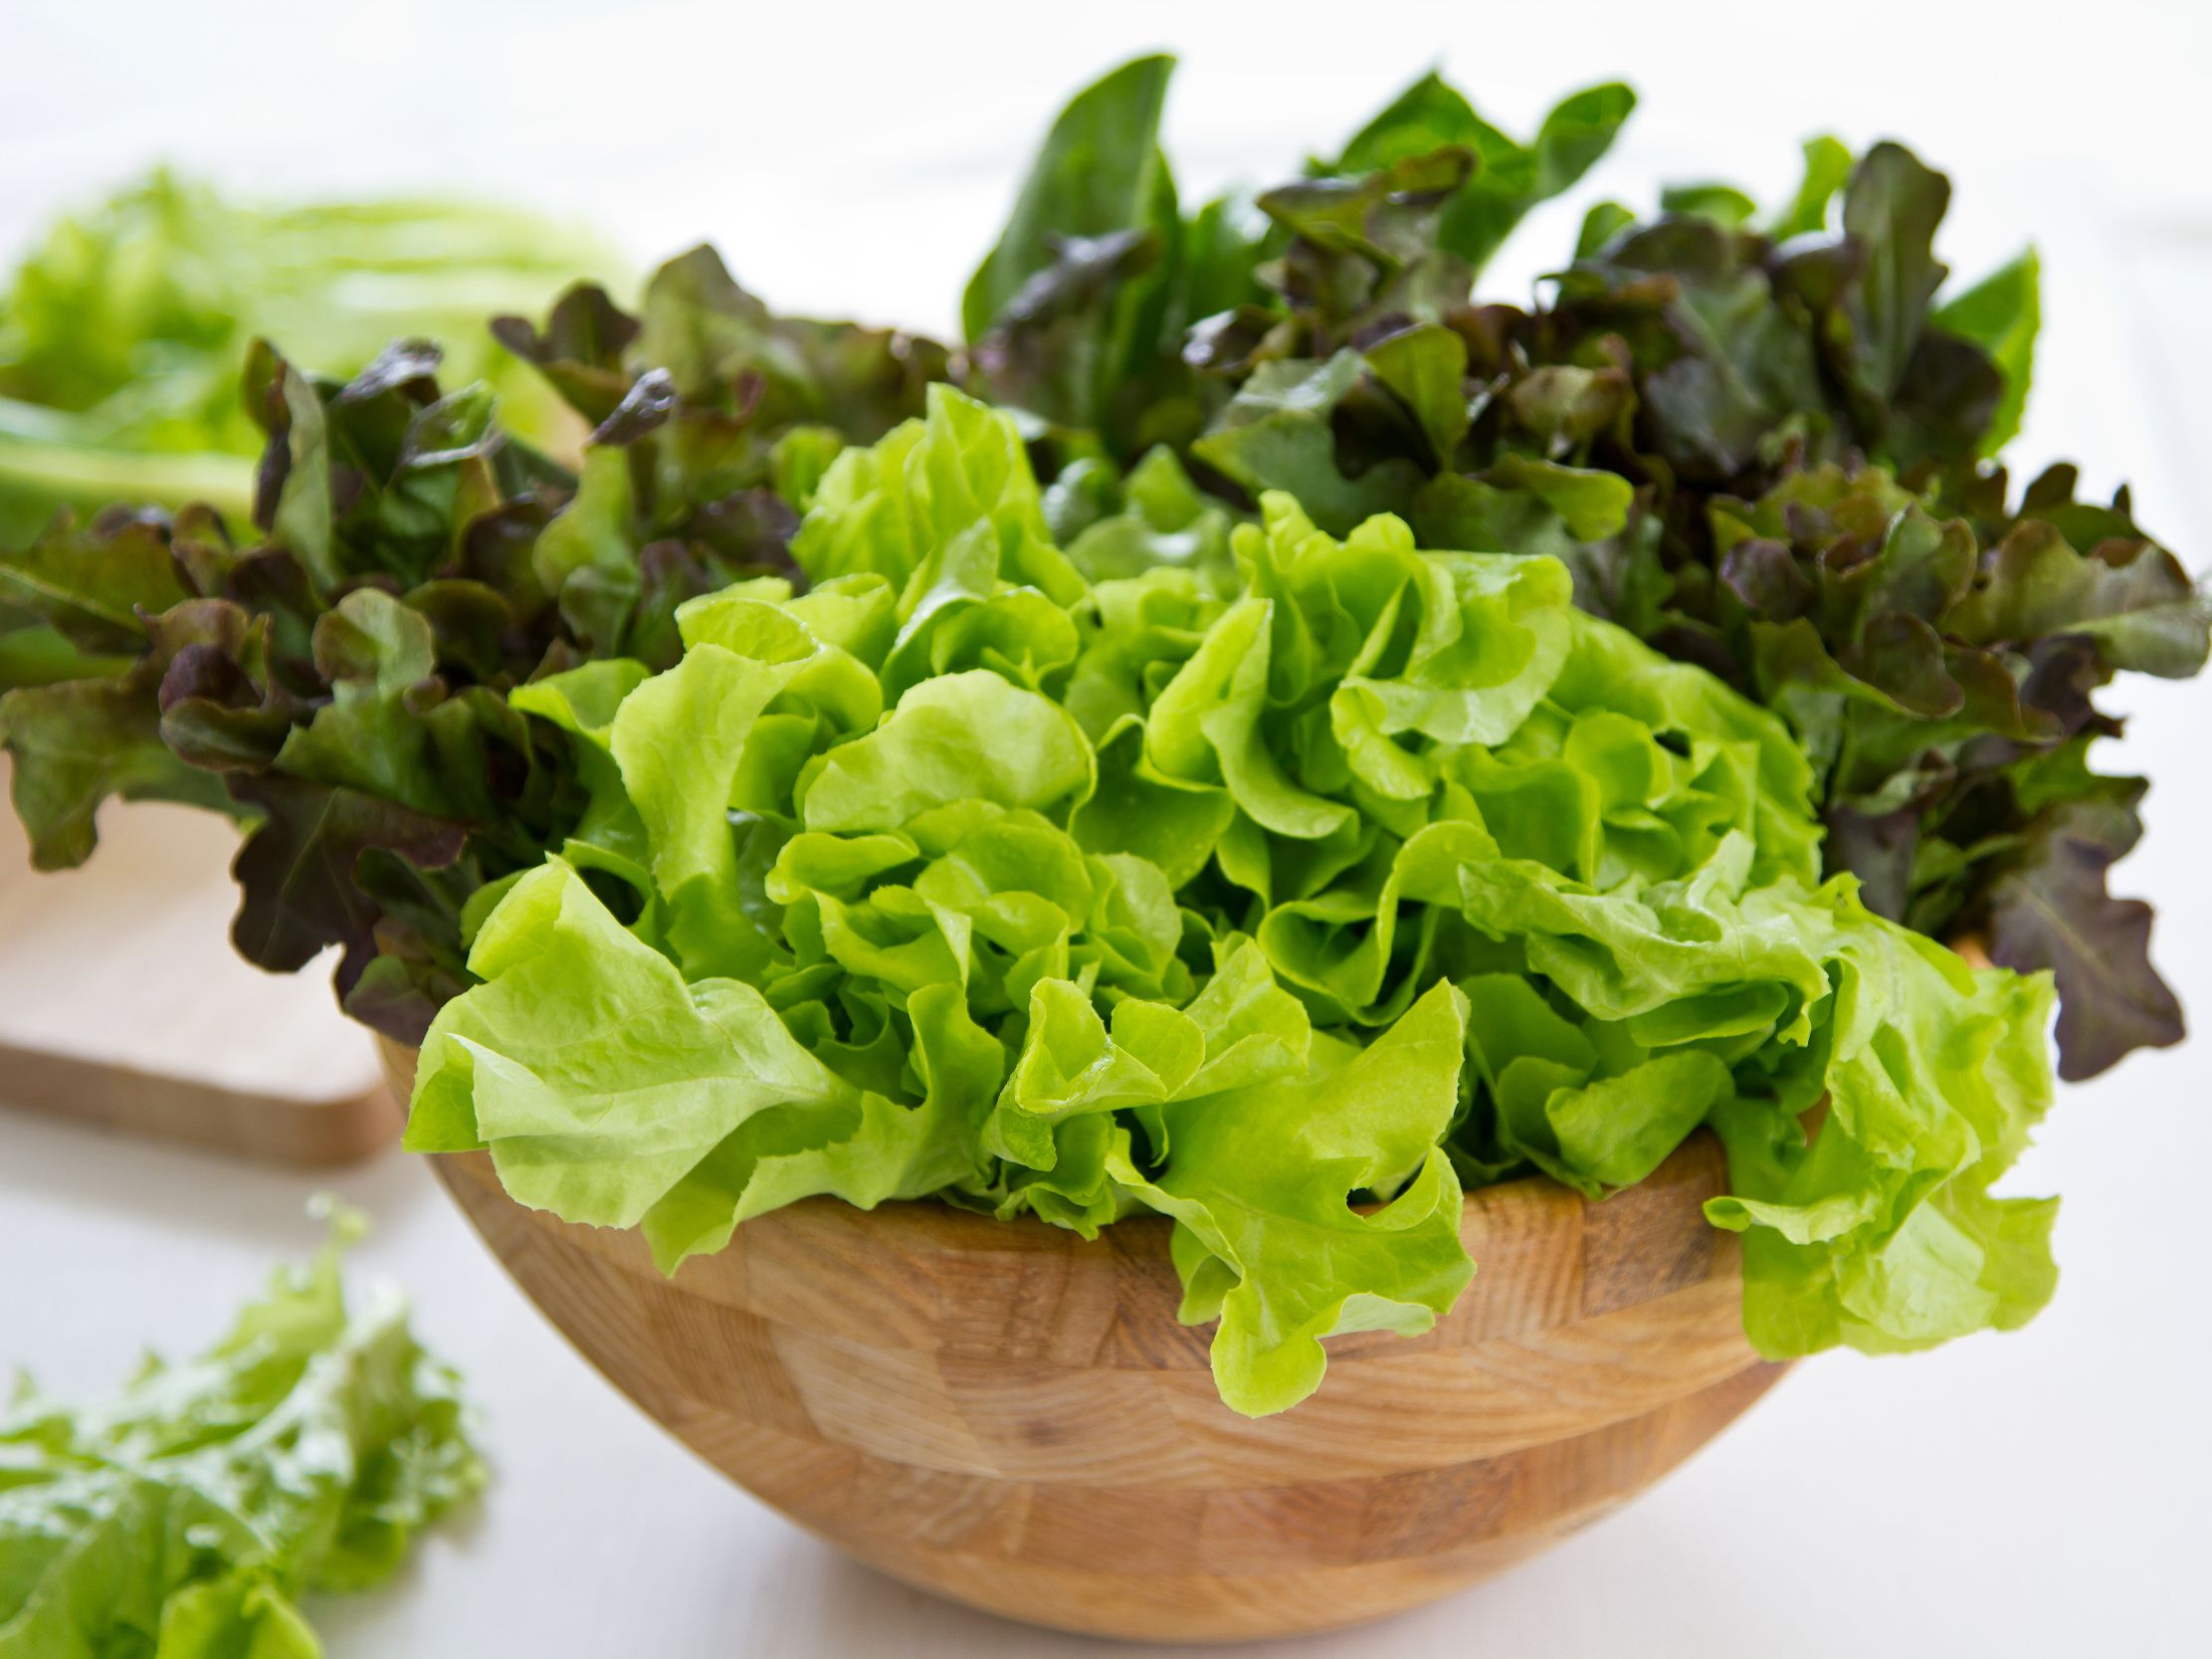 How To Store Lettuce To Keep It Fresh And Crisp